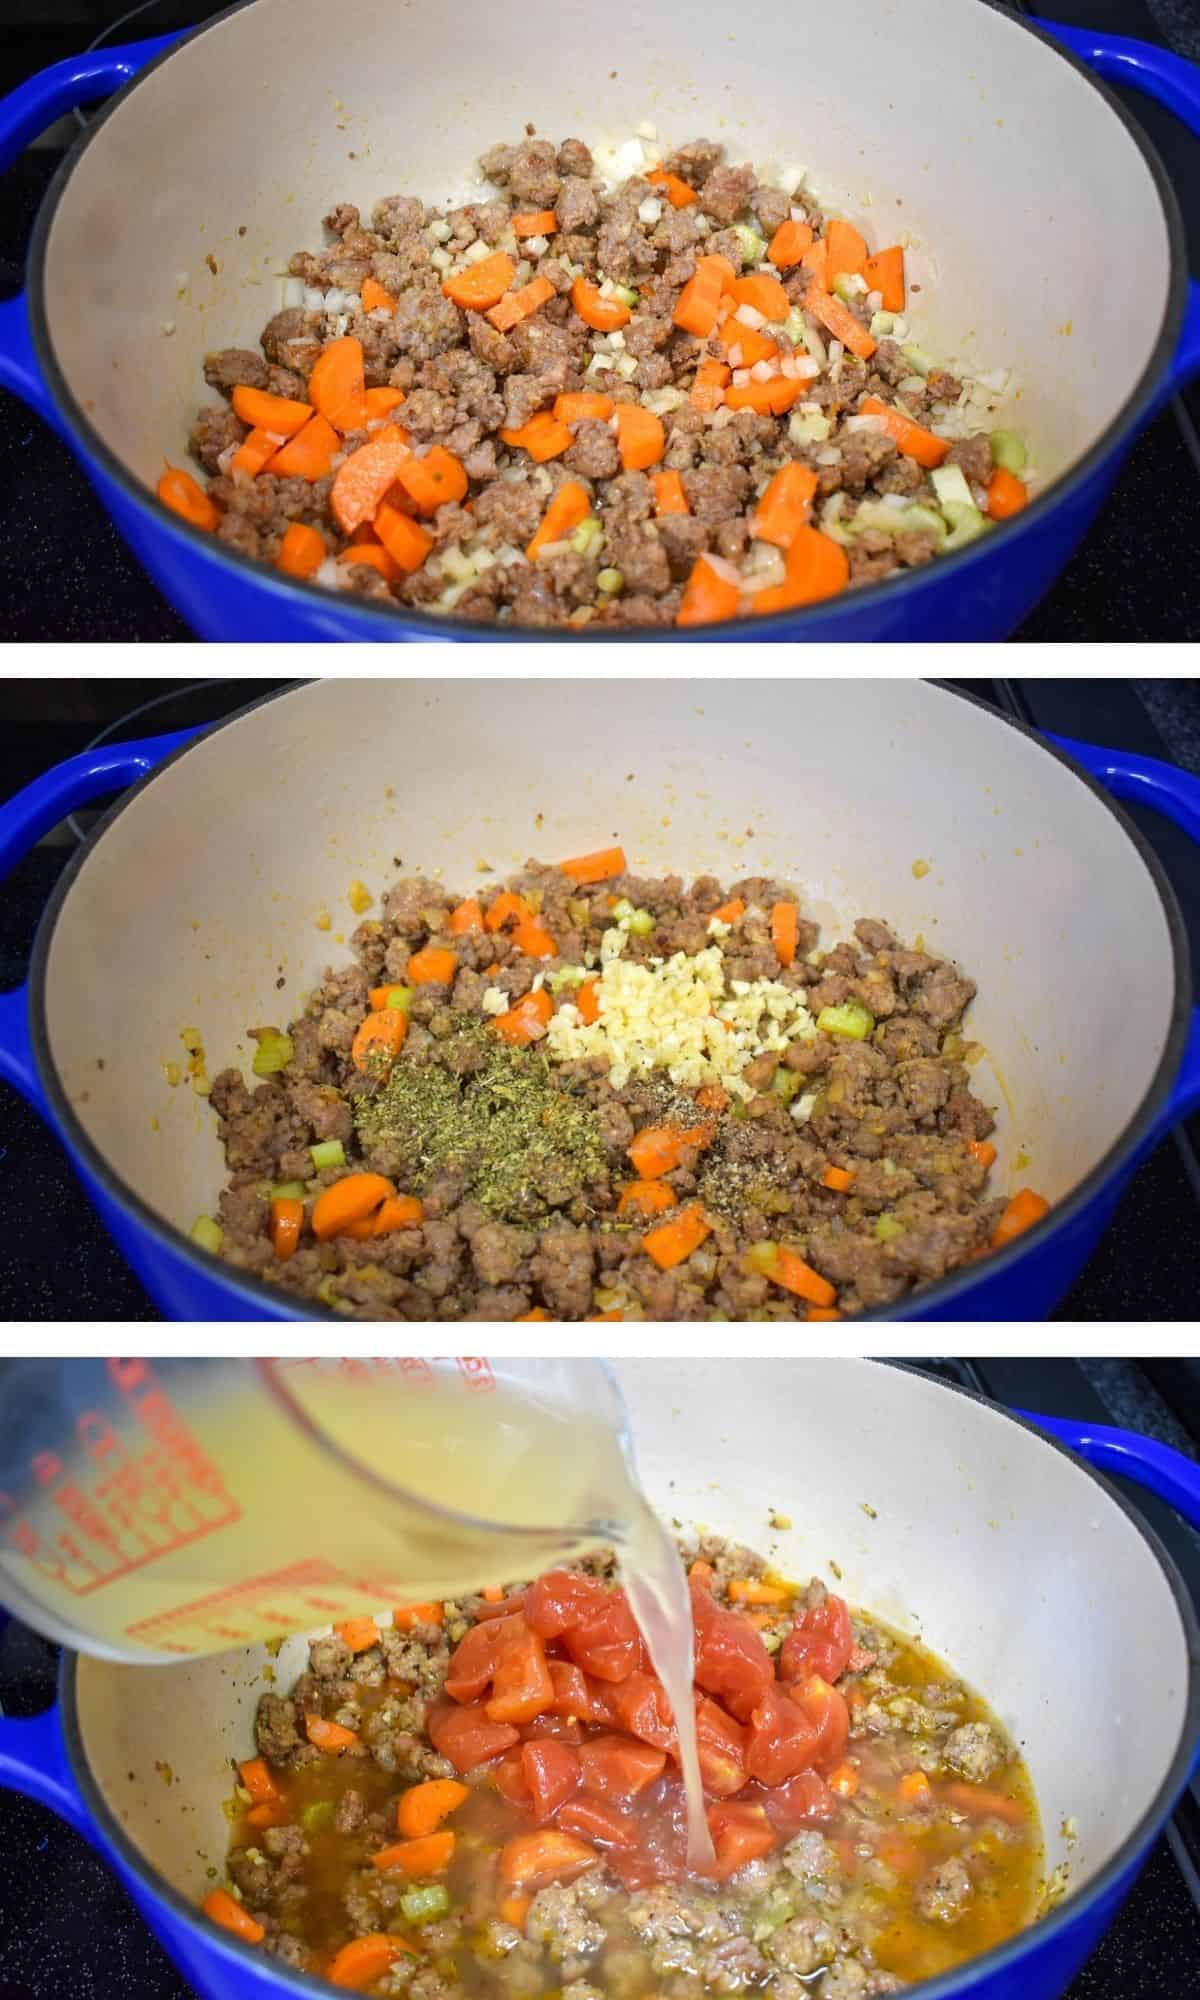 A collage of three images showing the steps of making sausage minestrone soup from cooking the vegetables to adding the chicken broth.